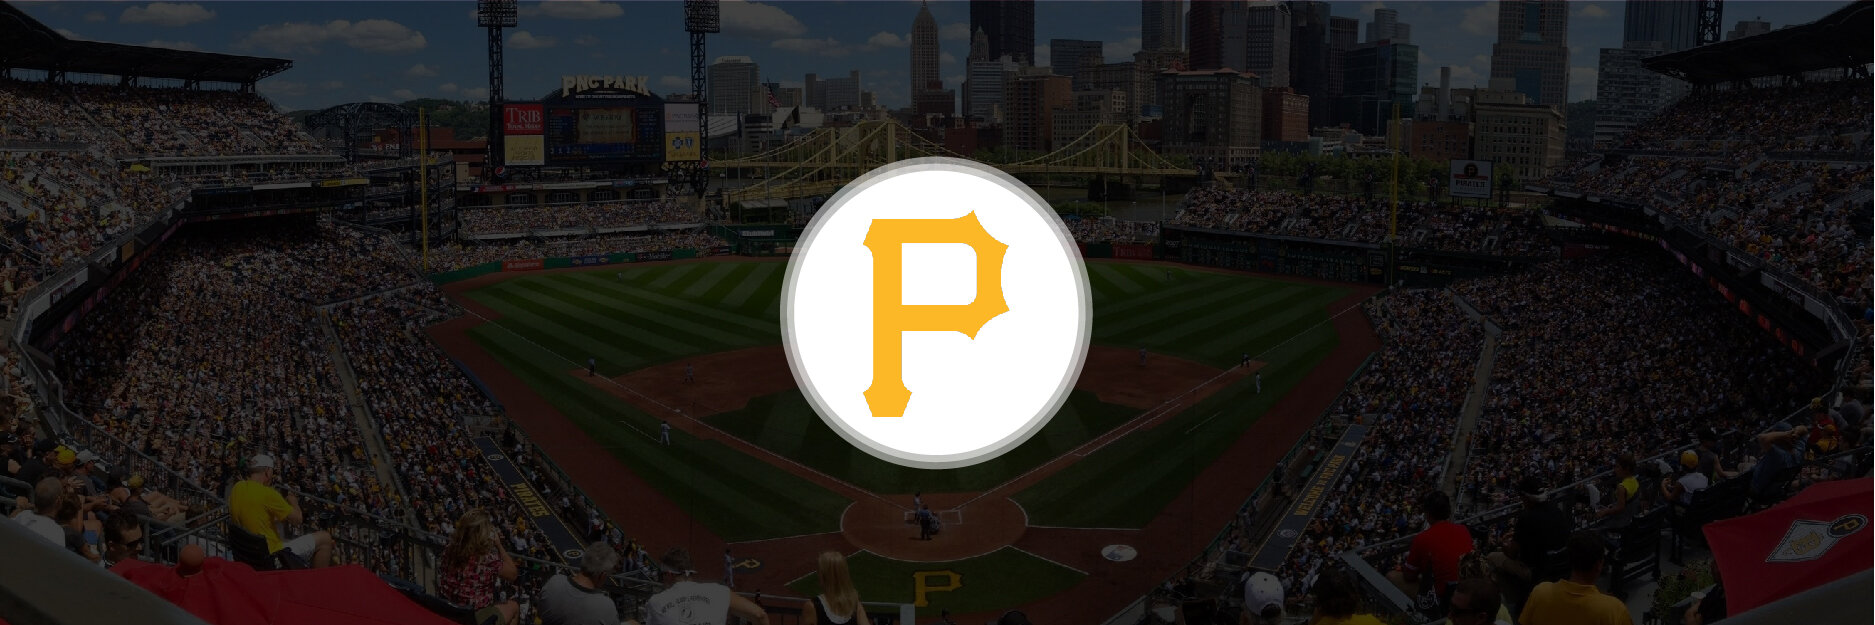 Pittsburgh Pirates Analysis Before 2020 Season Start